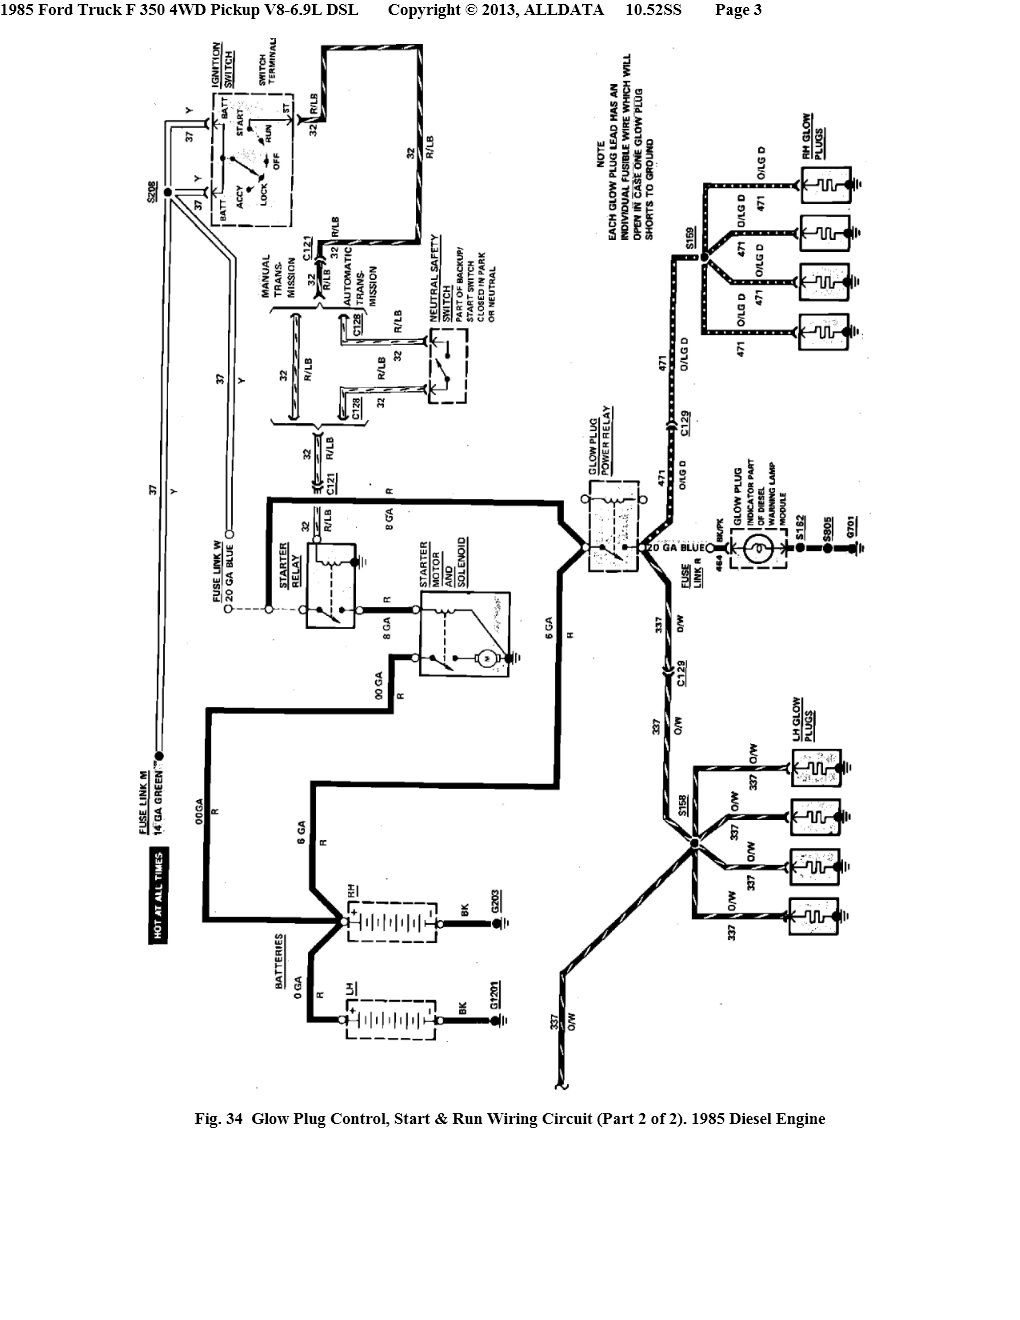 Fuse Box Guide For 2012 Ford F150. Fuse. A Wiring Diagrams